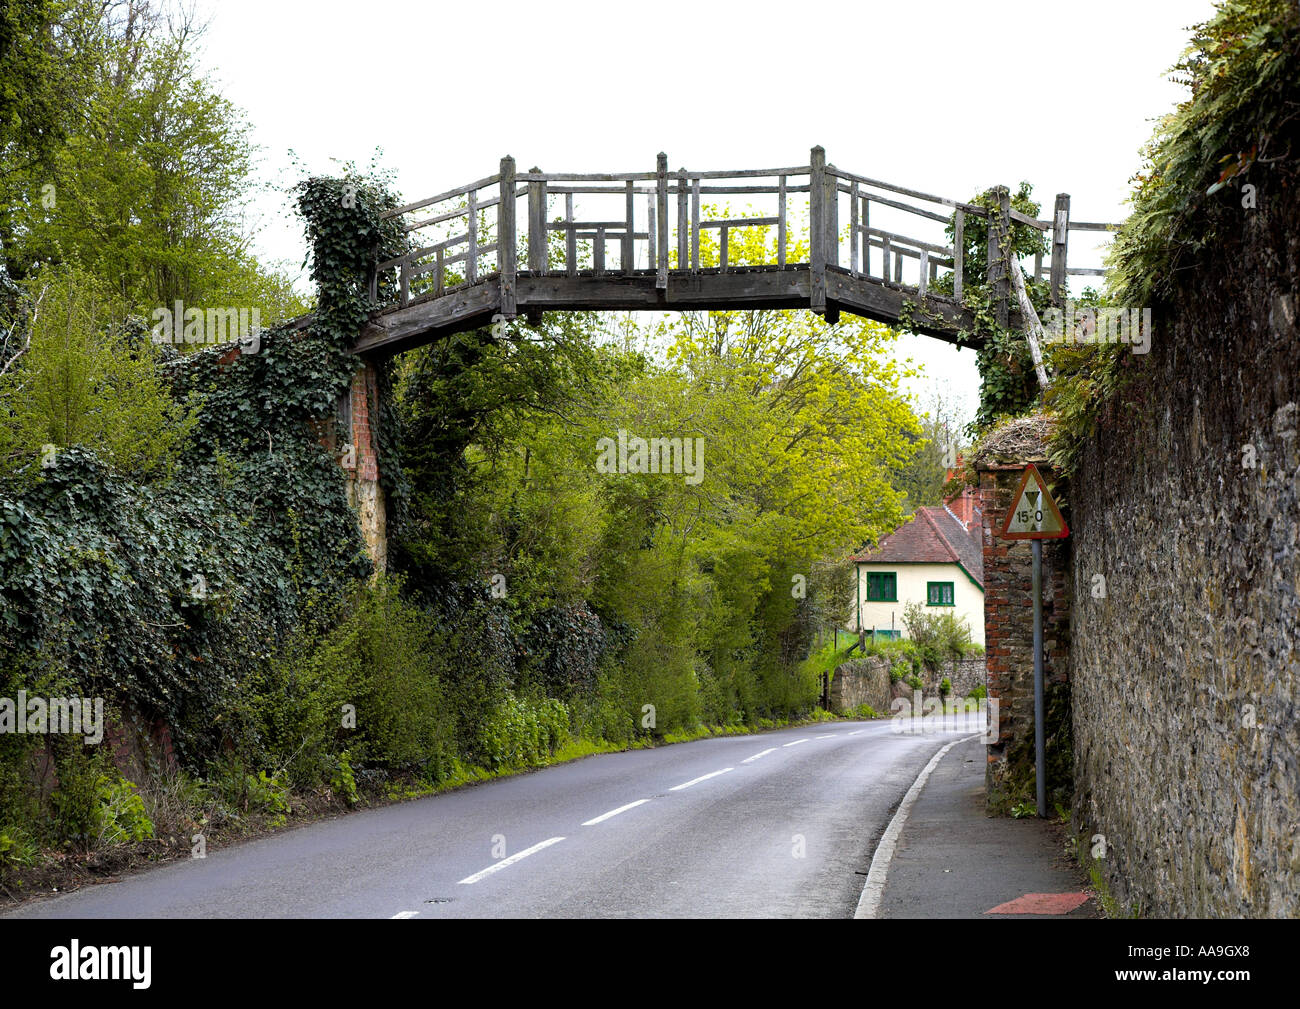 Old wooden bridge over the road in Shere Surrey Stock Photo